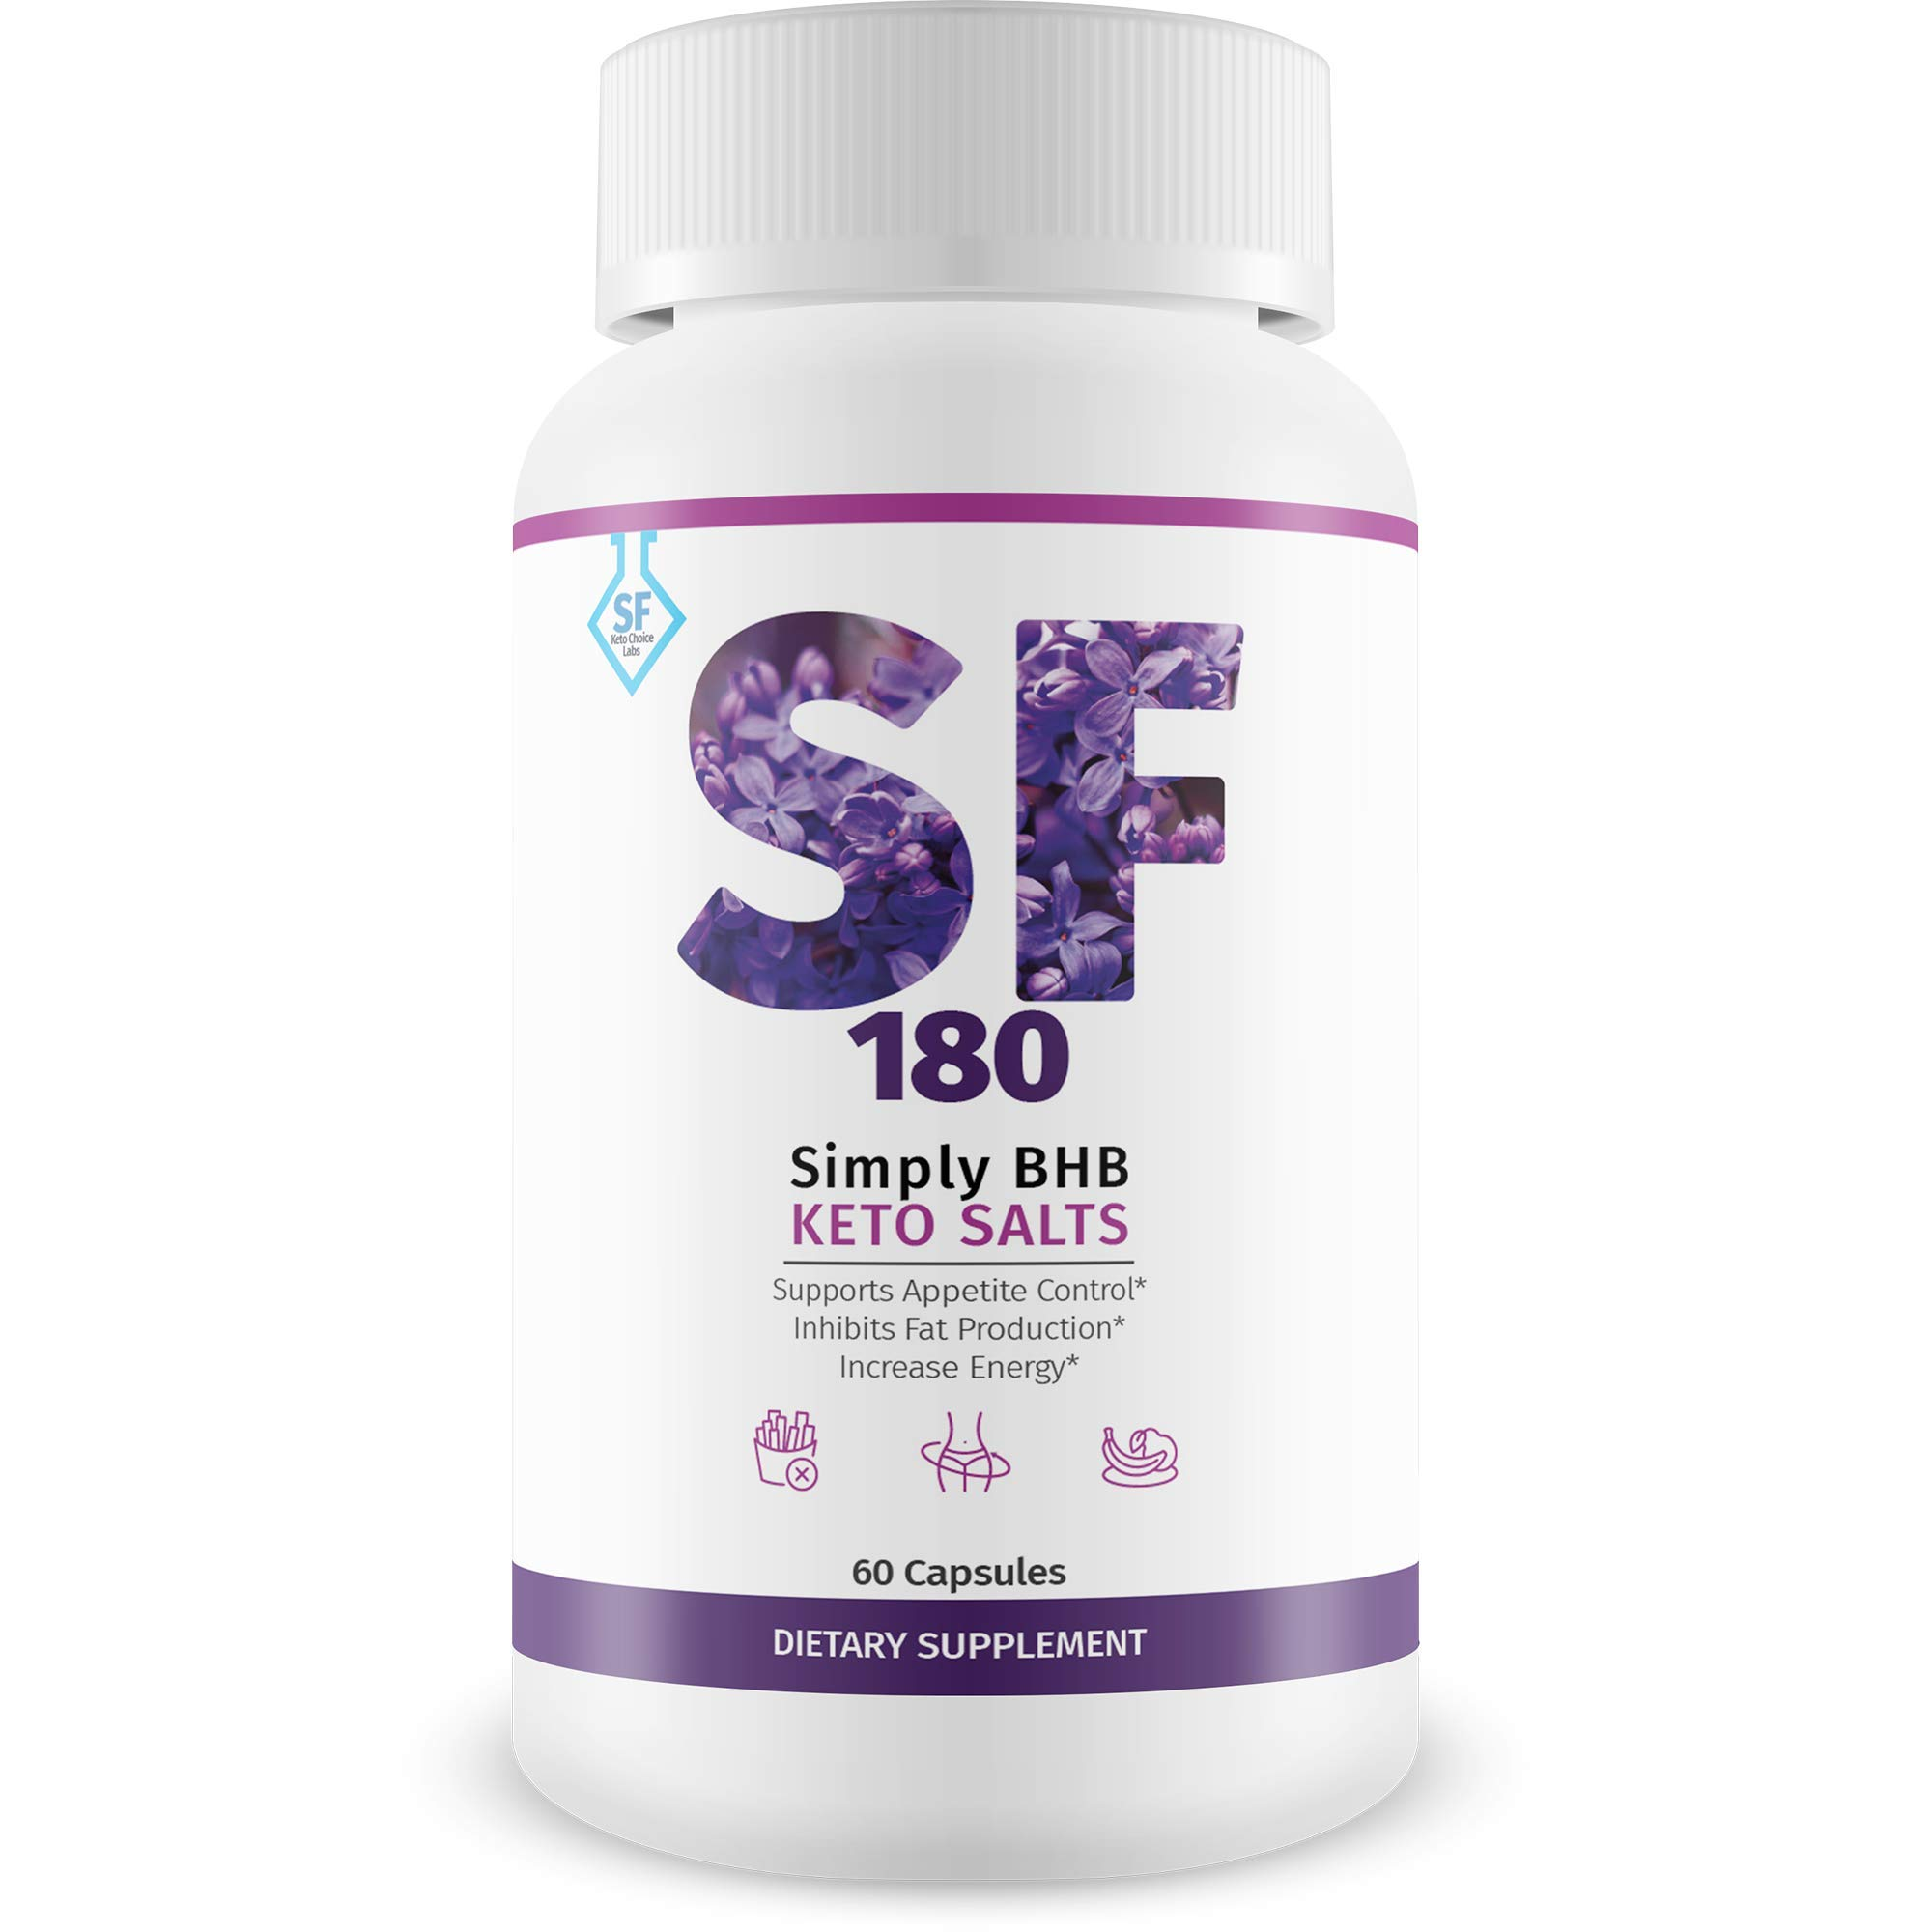 SF 180 - Simply SF Keto Diet - Burn More Fat Faster with Boosted Ketosis Entry - Beach Body All Year Round with Simply Fit Keto Miraculoux Ketones Pills - Slimfit 180 Keto BHB by Keto Choice Labs by SF Keto Choice Labs